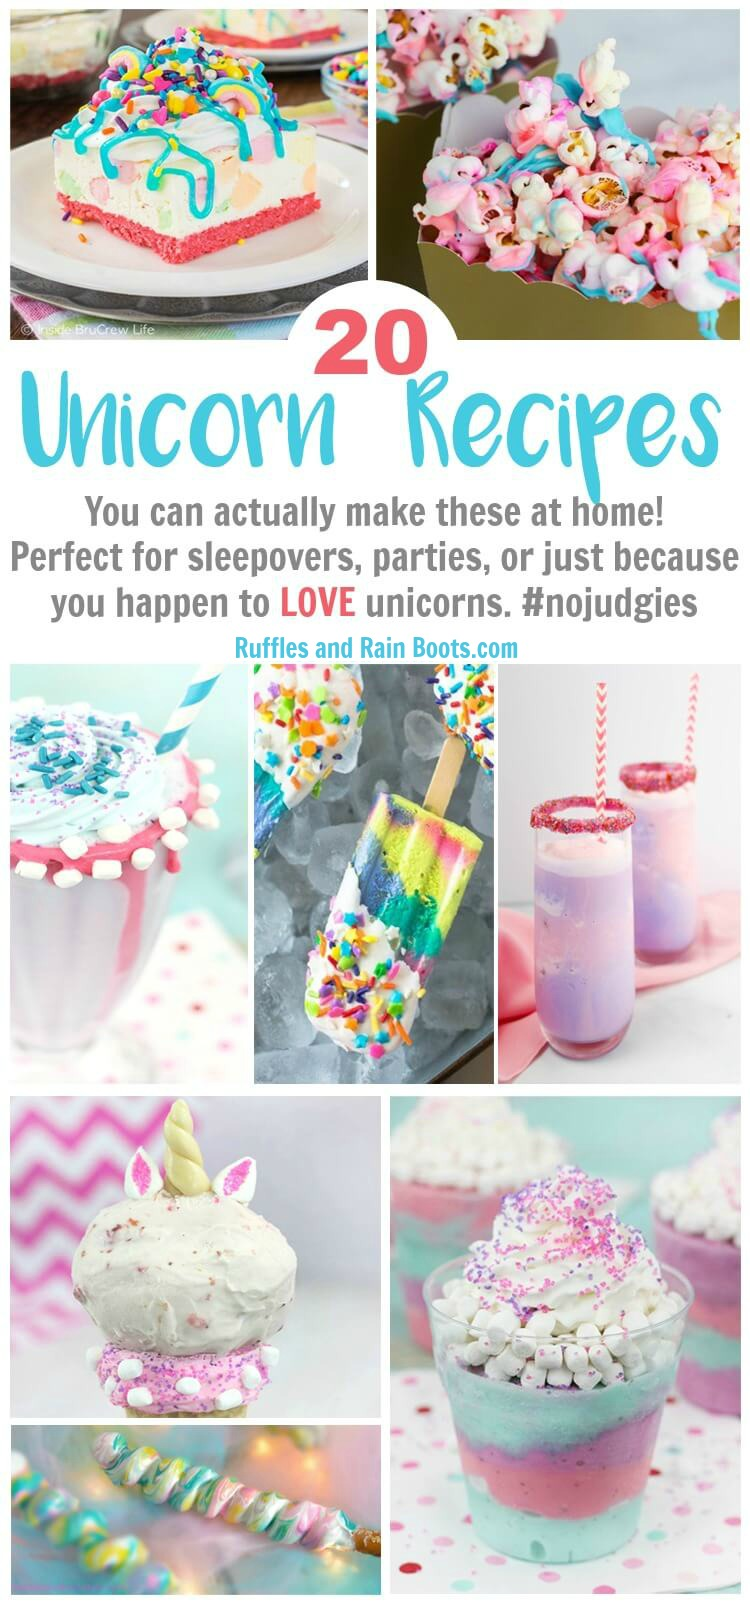 Make one (or all) of these 20 of the best unicorn recipes you can actually make yourself! They're perfect for unicorn lovers, birthdays, or parties. #unicorn #unicornparty